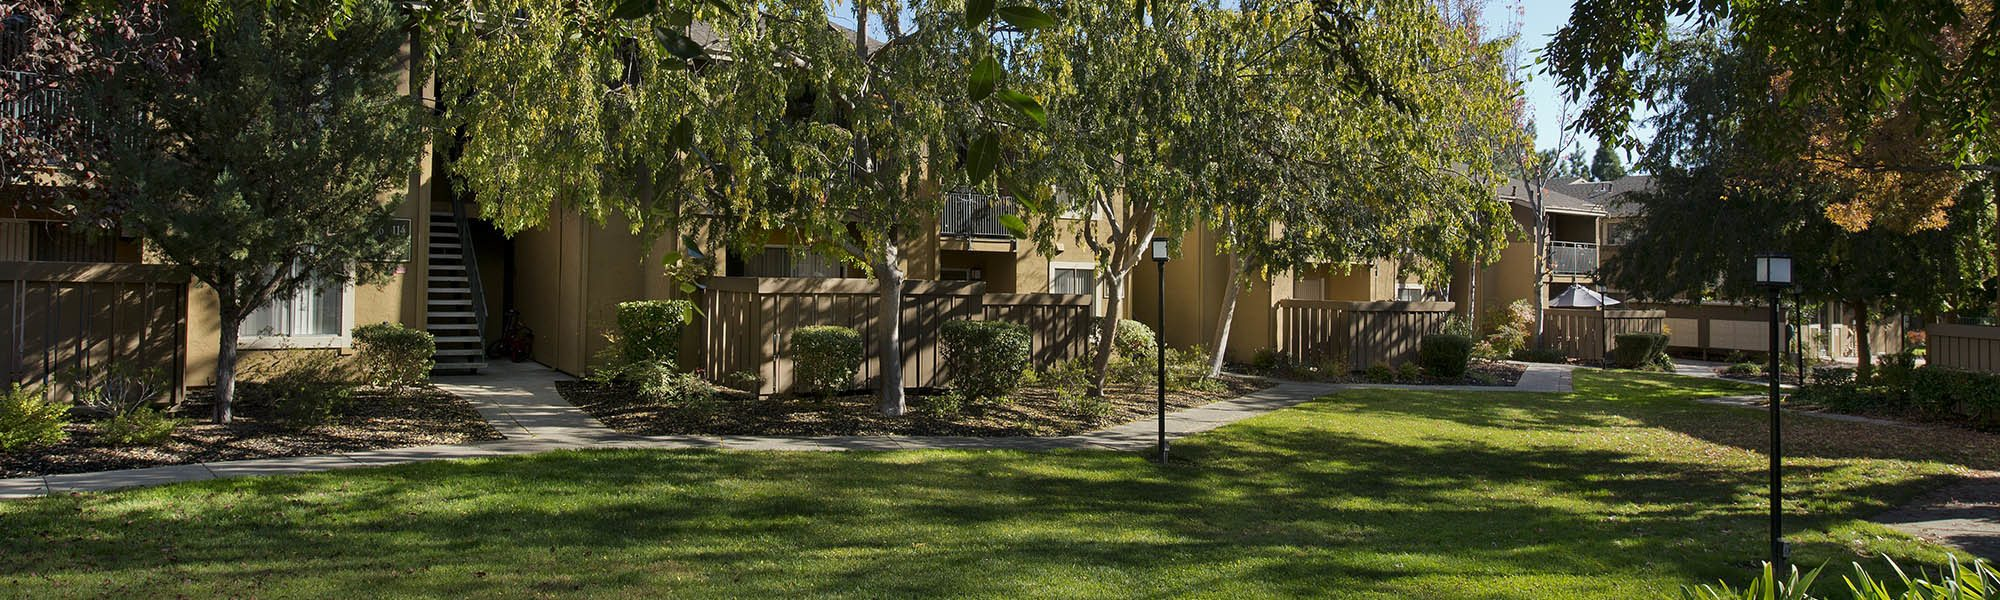 Learn about our neighborhood at Valley Ridge Apartment Homes in Martinez, CA on our website